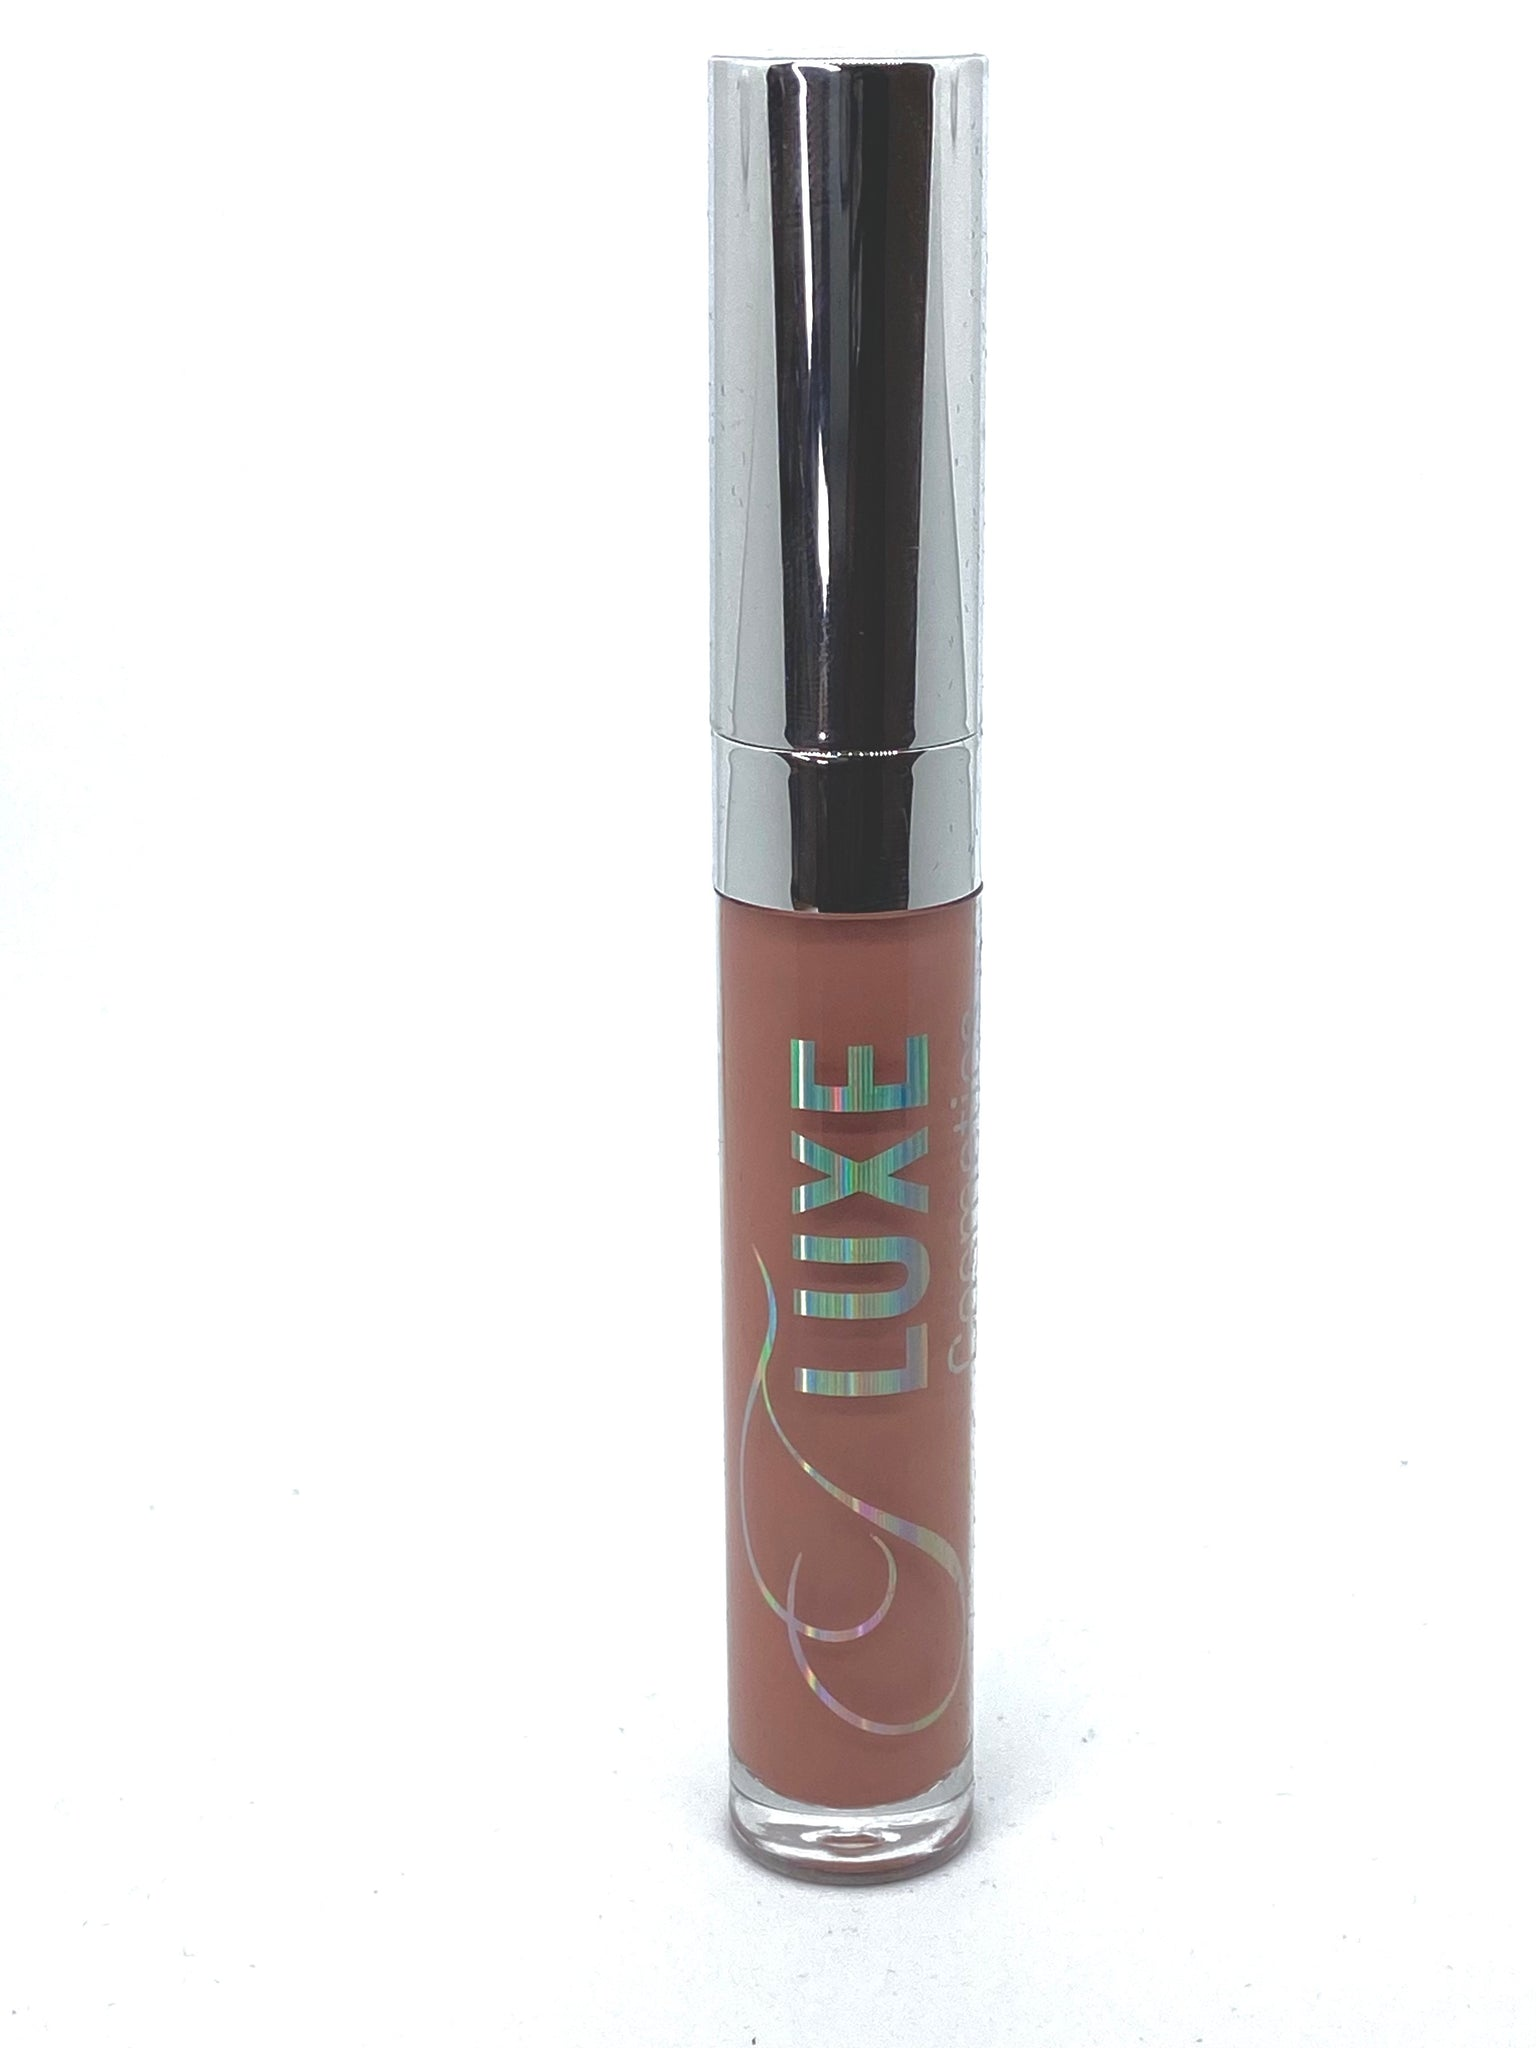 Naked - Luxe Creamy Matte Liquid Lip Stick